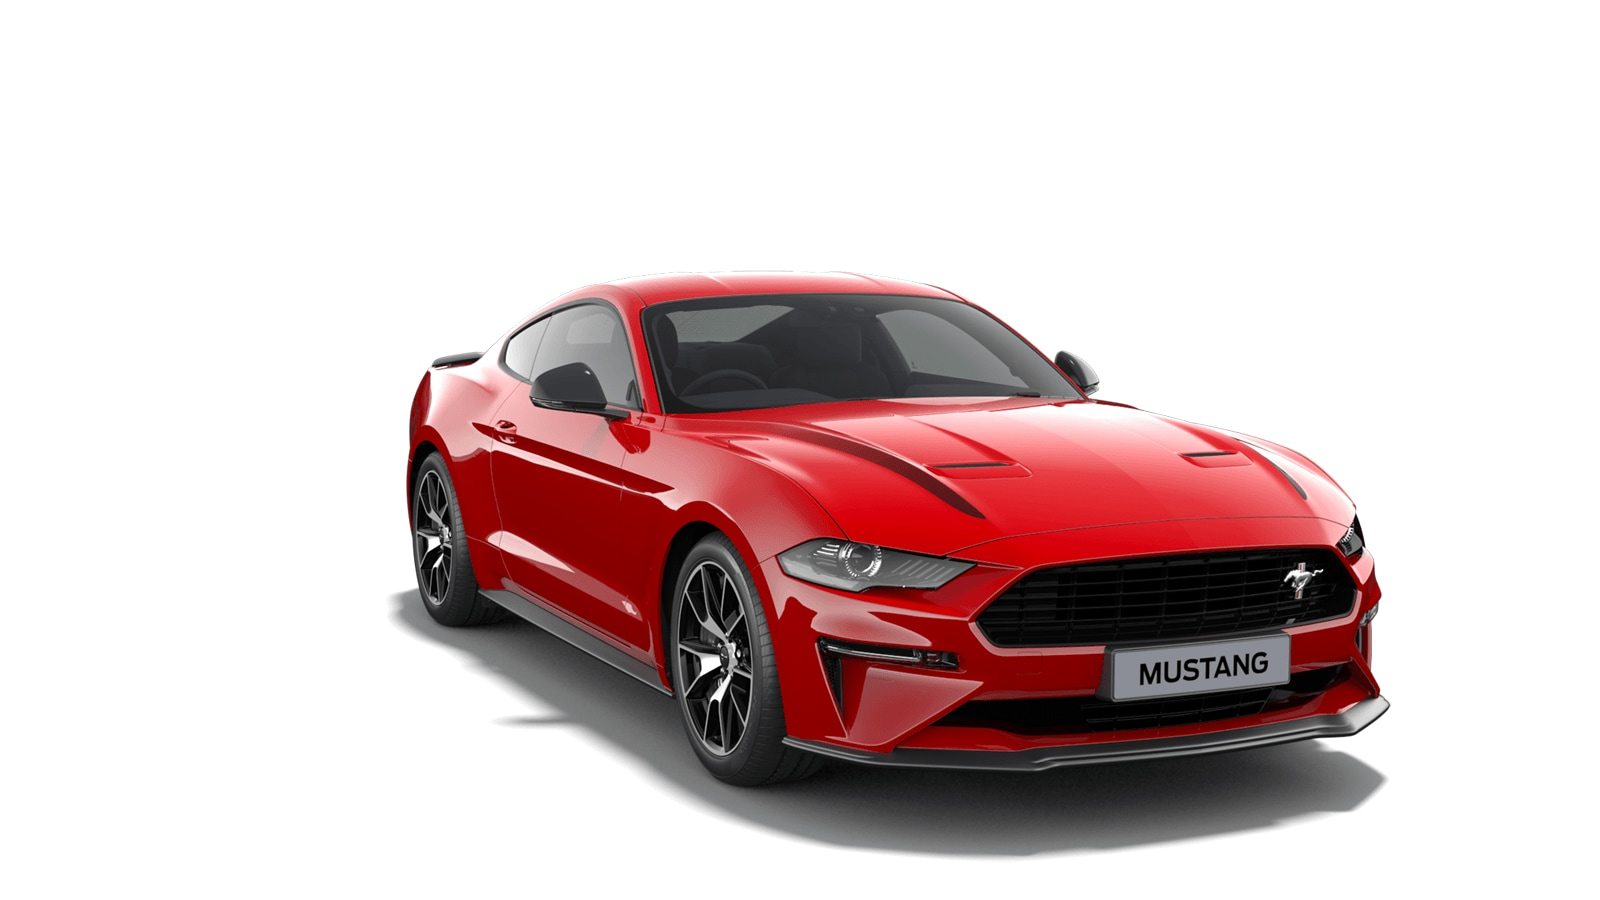 NEW MUSTANG 2.3 EcoBoost Fastback in Race Red